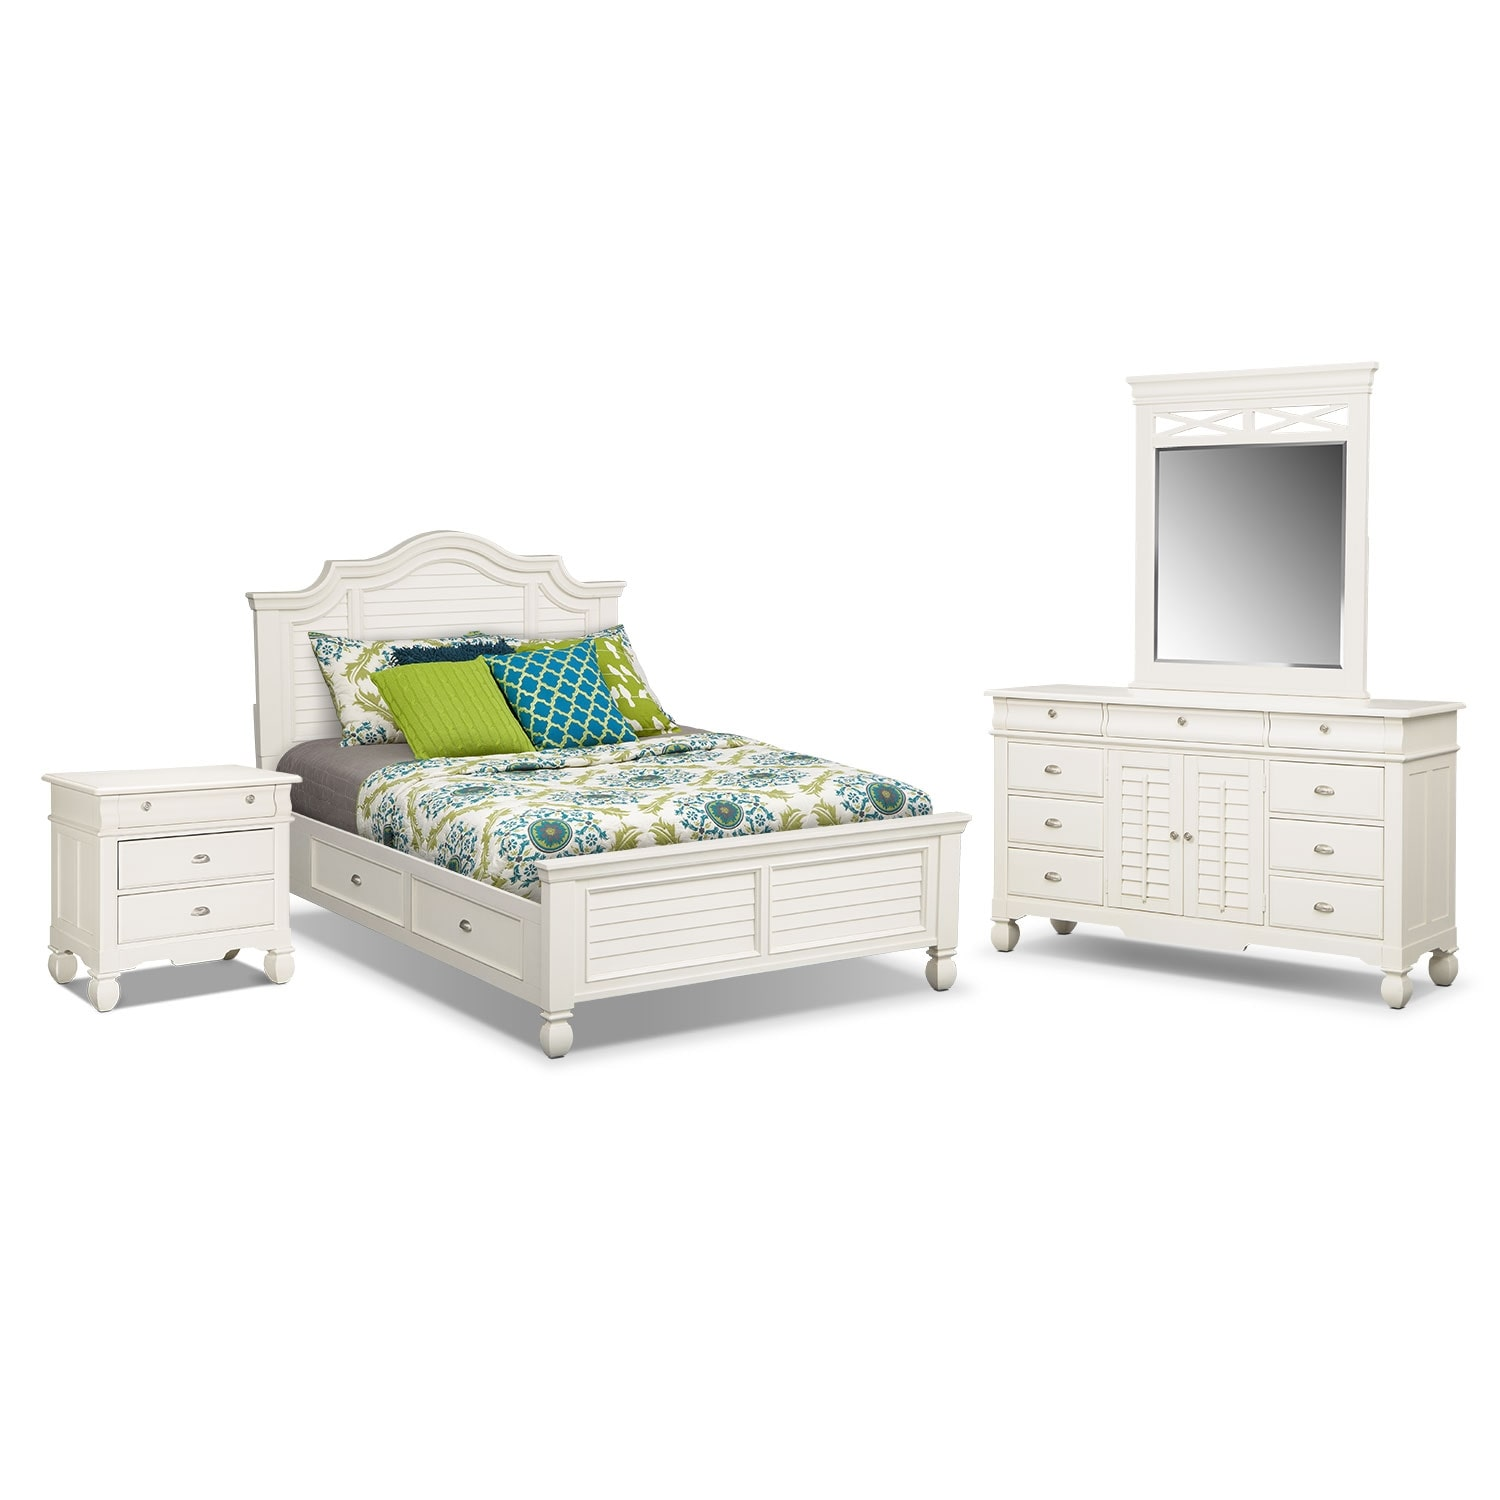 Bedroom Furniture - Plantation Cove White Storage 6 Pc. King Storage Bedroom (Alternate)